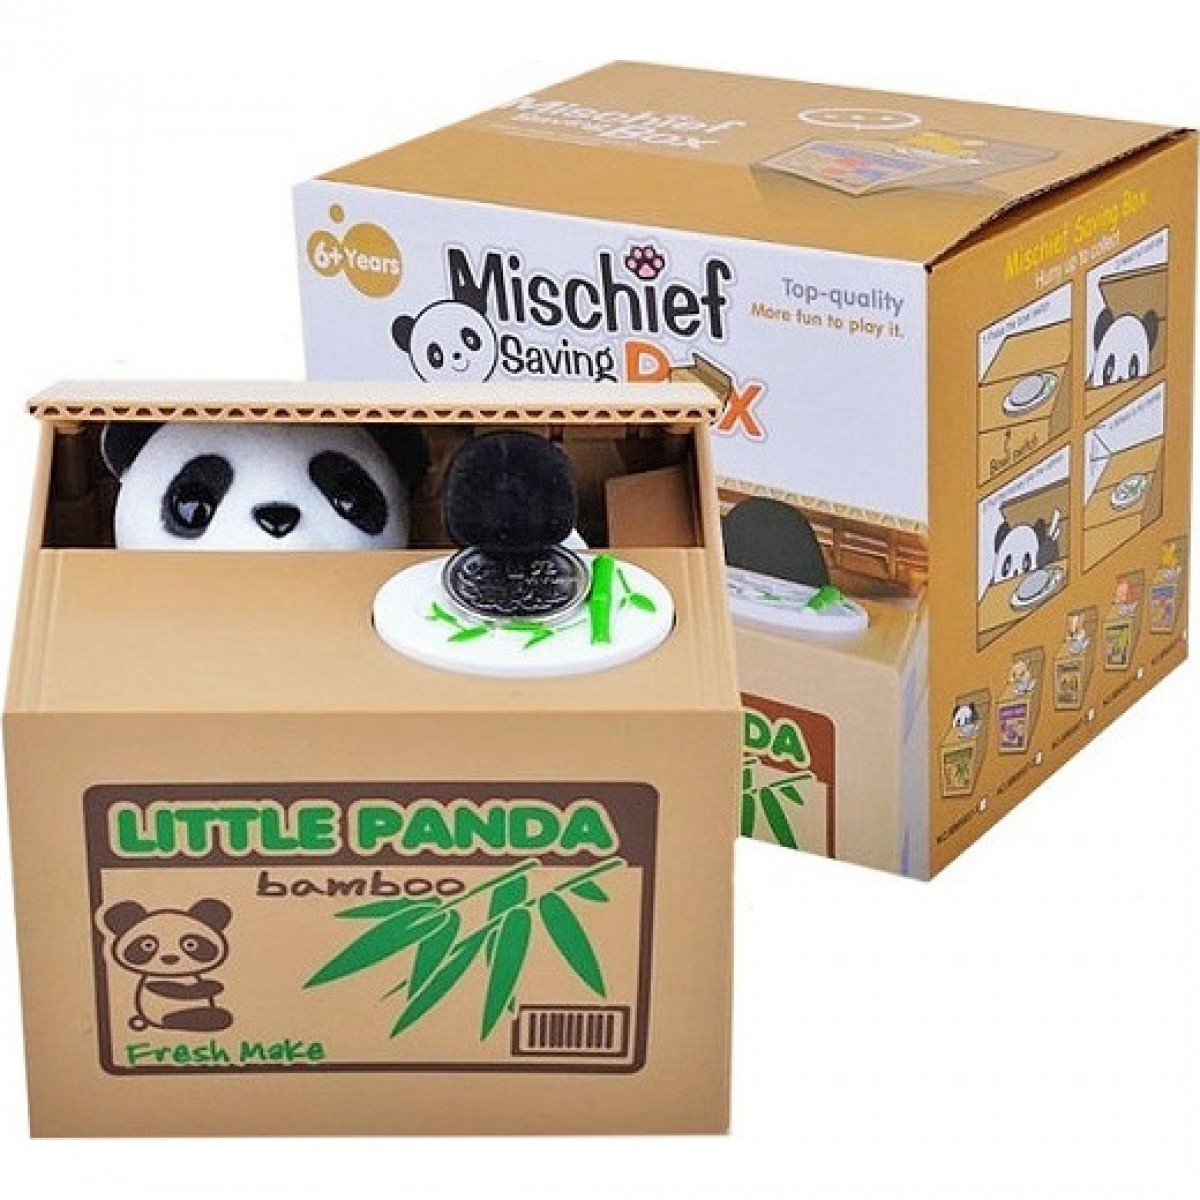 ΚΟΥΜΠΑΡΑΣ ΑΥΤΟΜΑΤΟΣ MM8807 MISCHIEF SAVING BOX LITTLE PANDA (OEM)